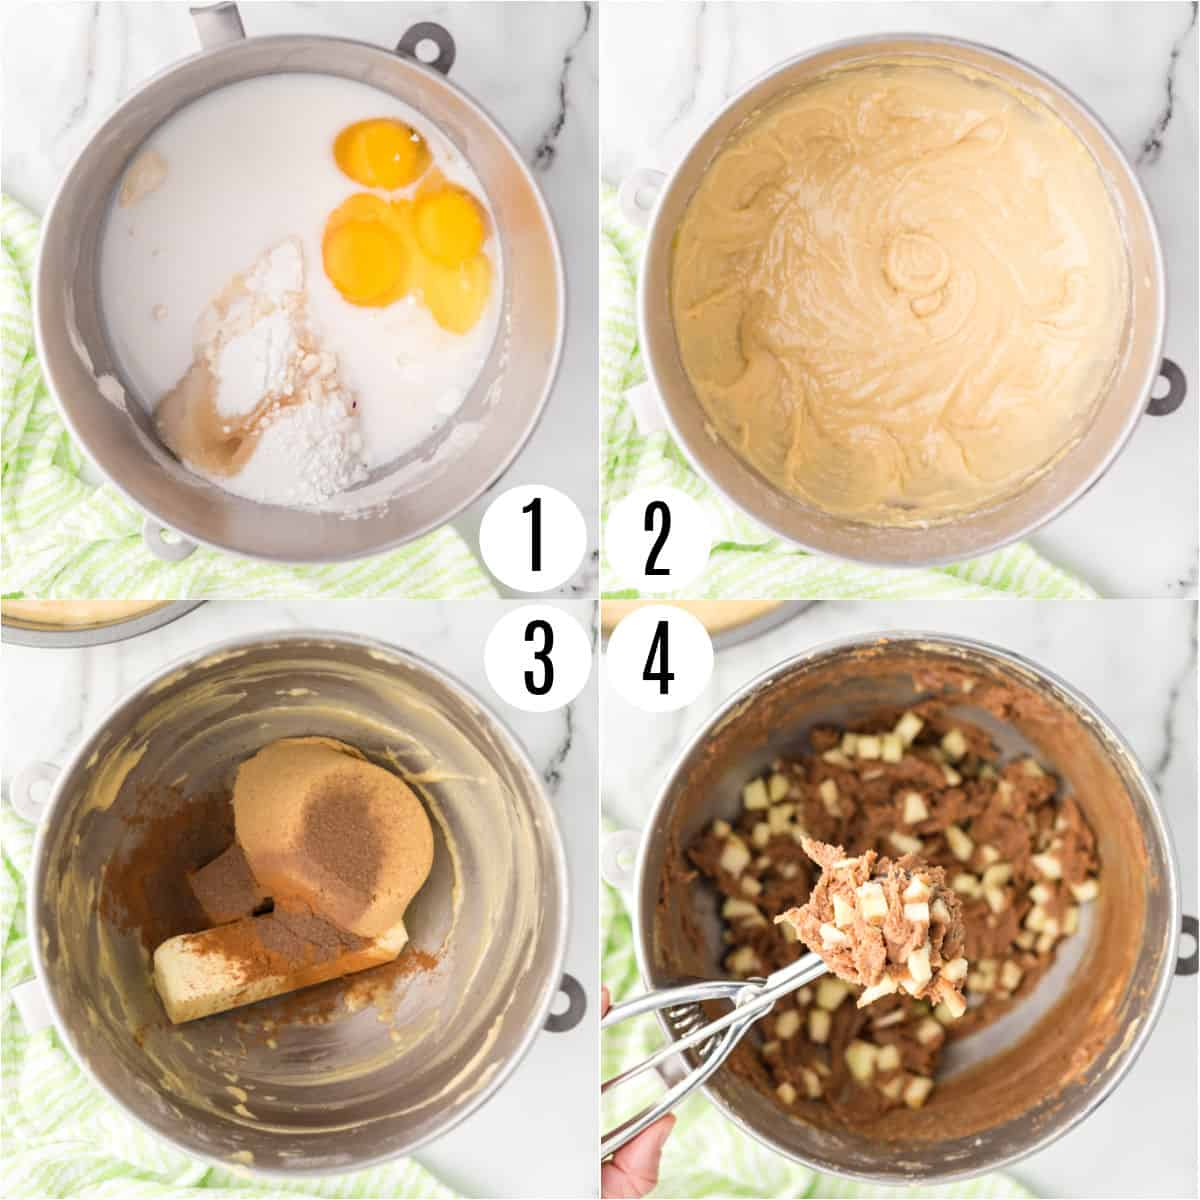 Step by step photos showing how to make apple coffee cake batter.